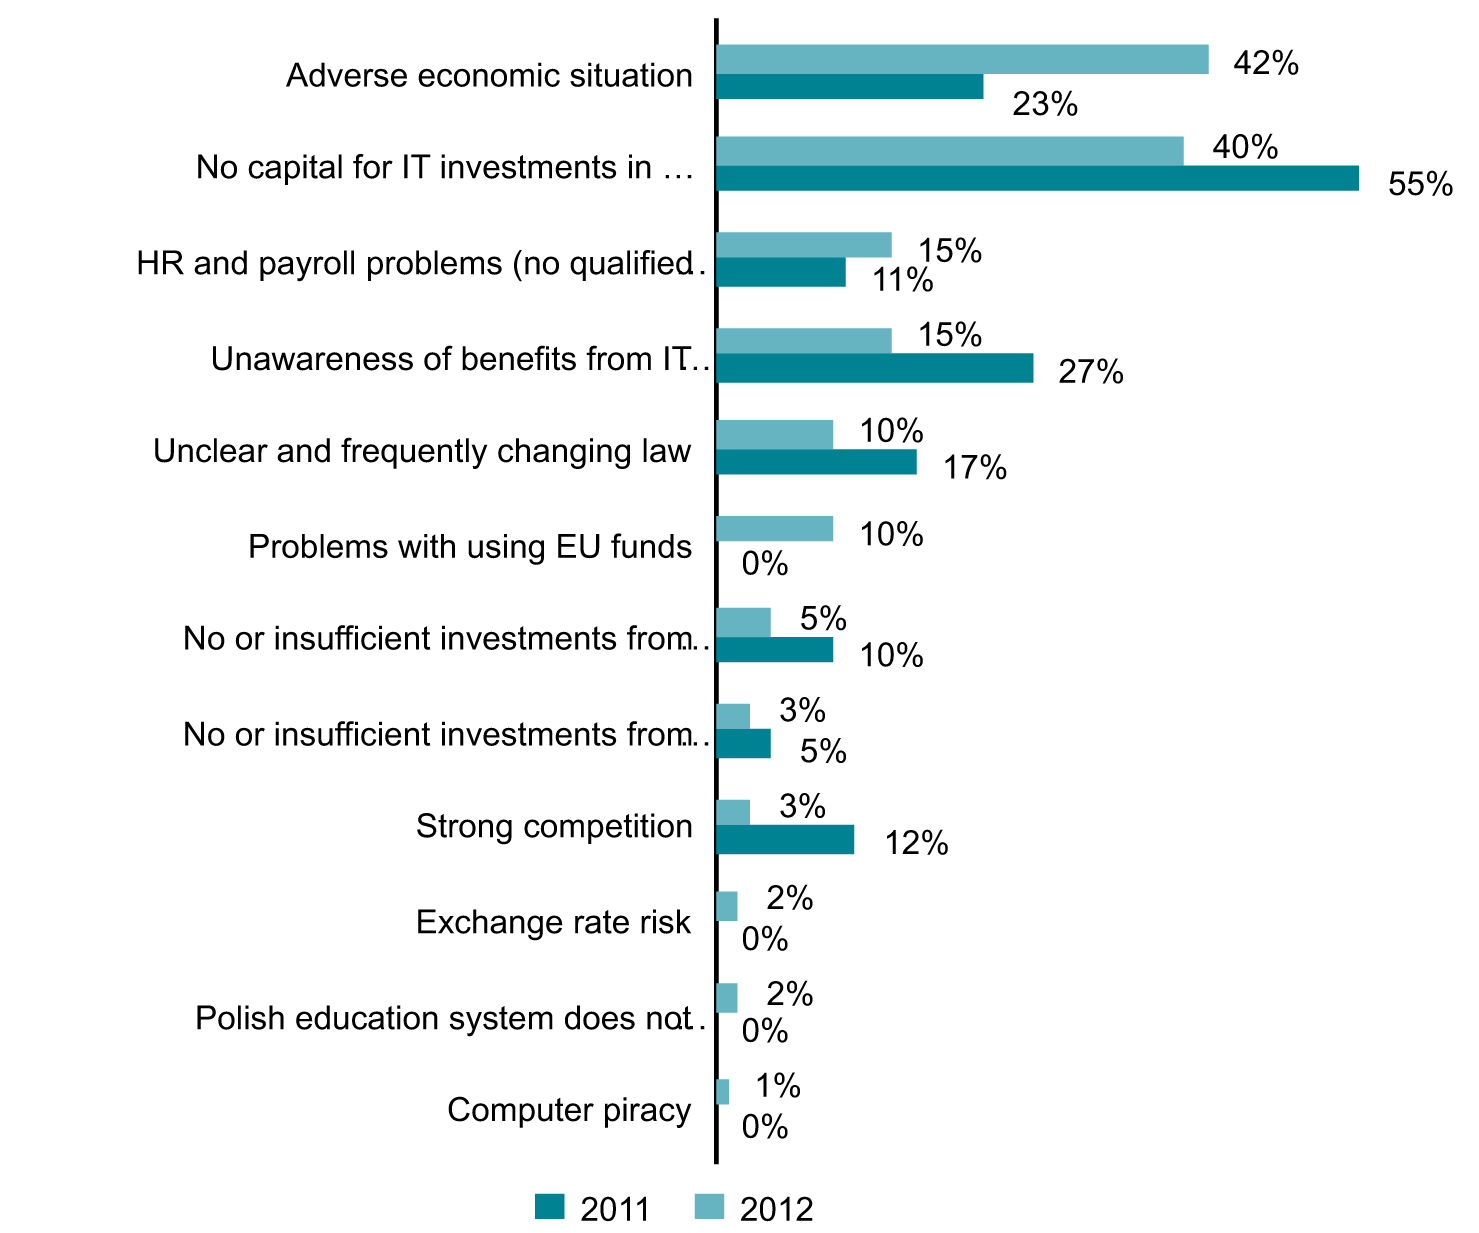 Main Growth Barriers for the IT Market in Poland (%), 2011-2012